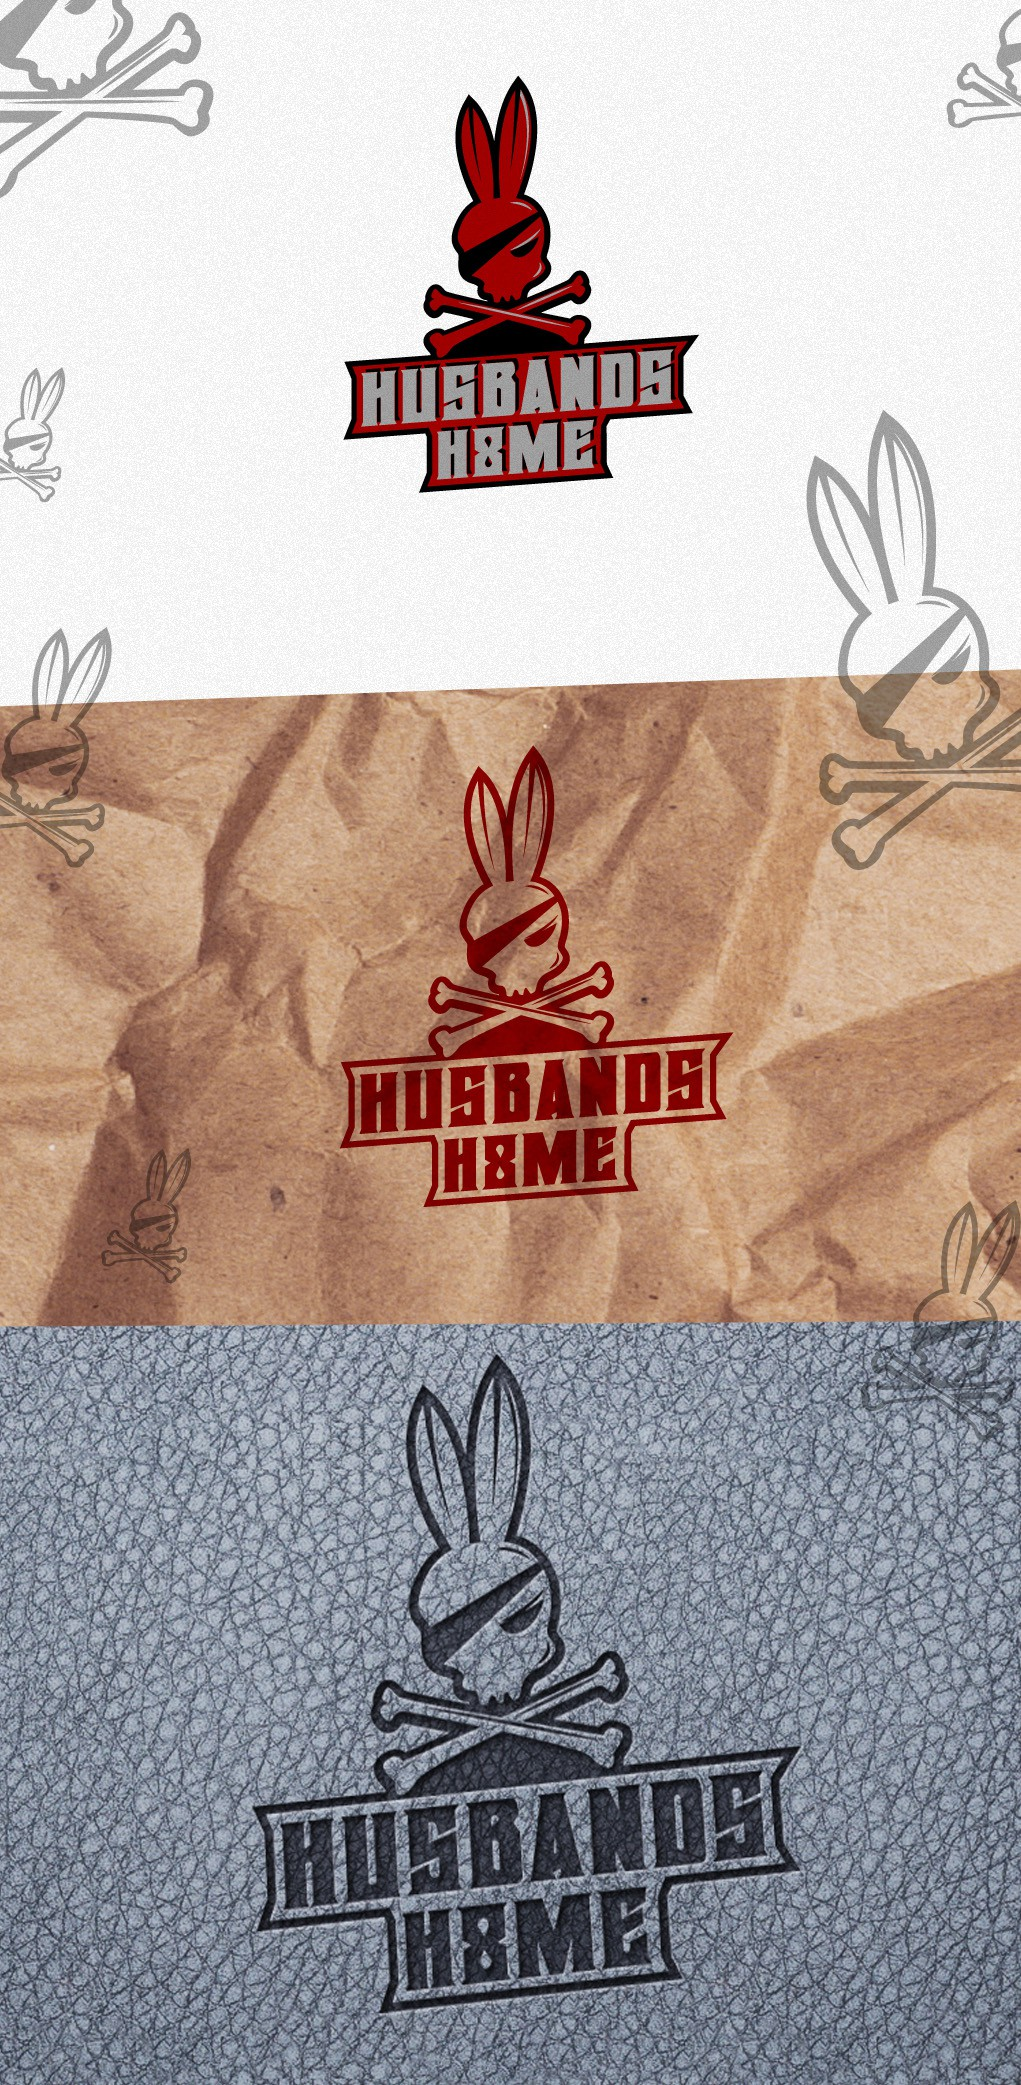 HUSBANDS HATE ME / HUSBANDS H8ME / HH8ME  with a new logo